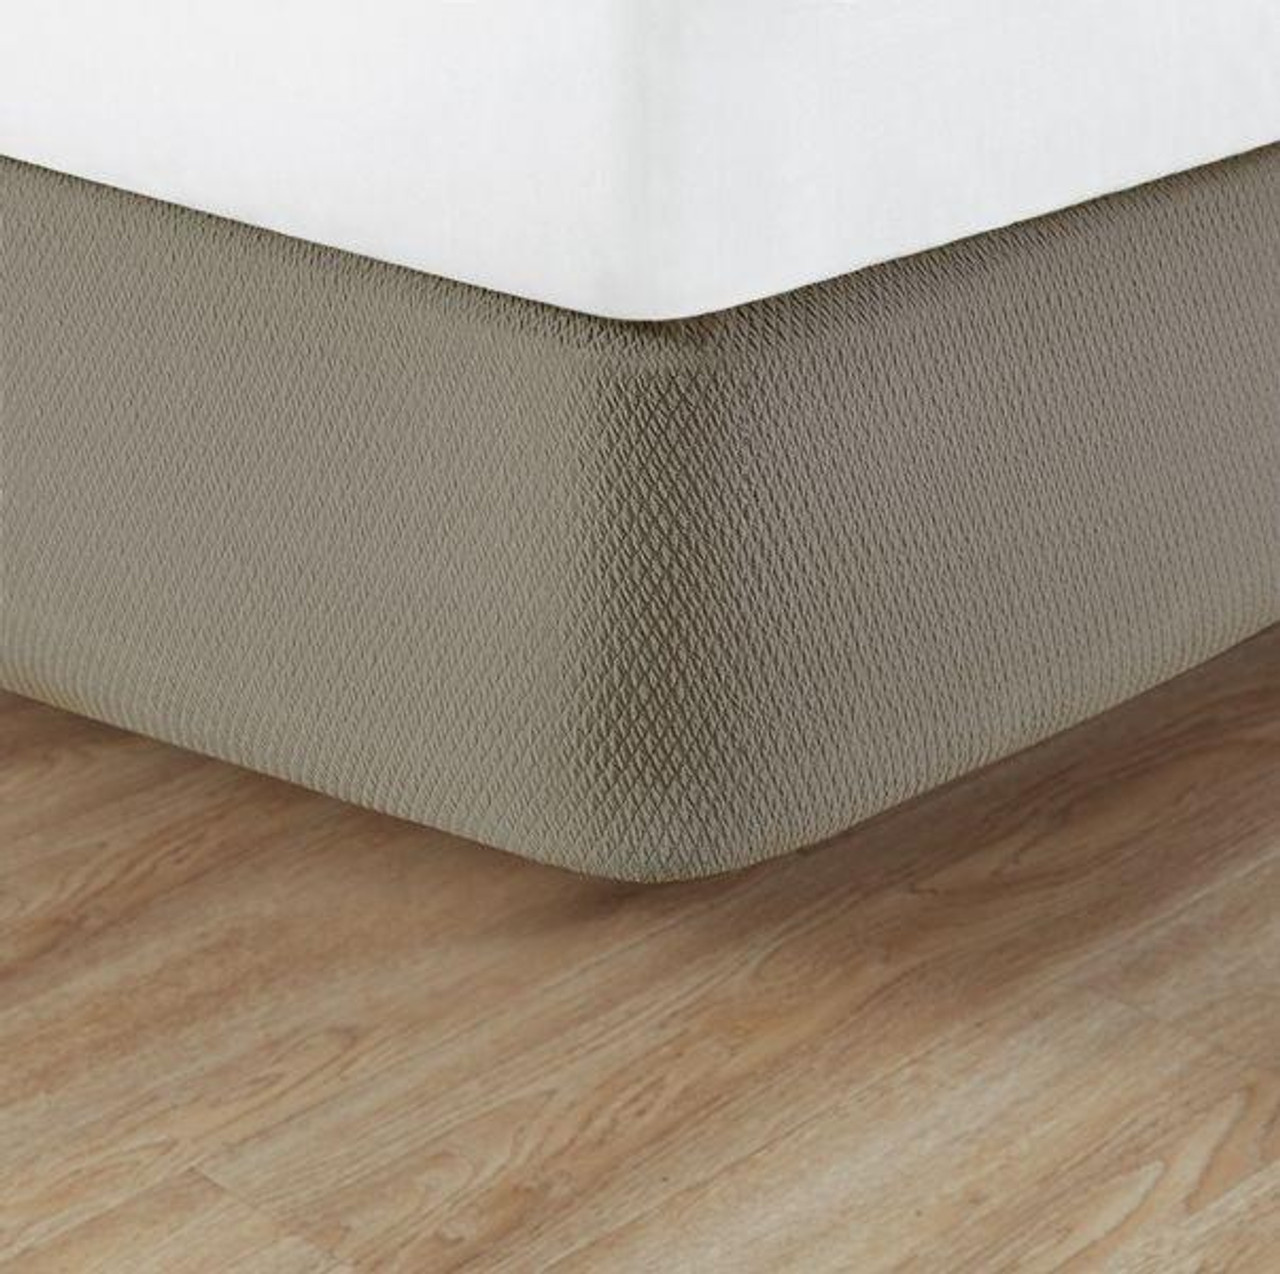 Berkshire Bedding Box Spring Wrap-Knit2Fit By Berkshire